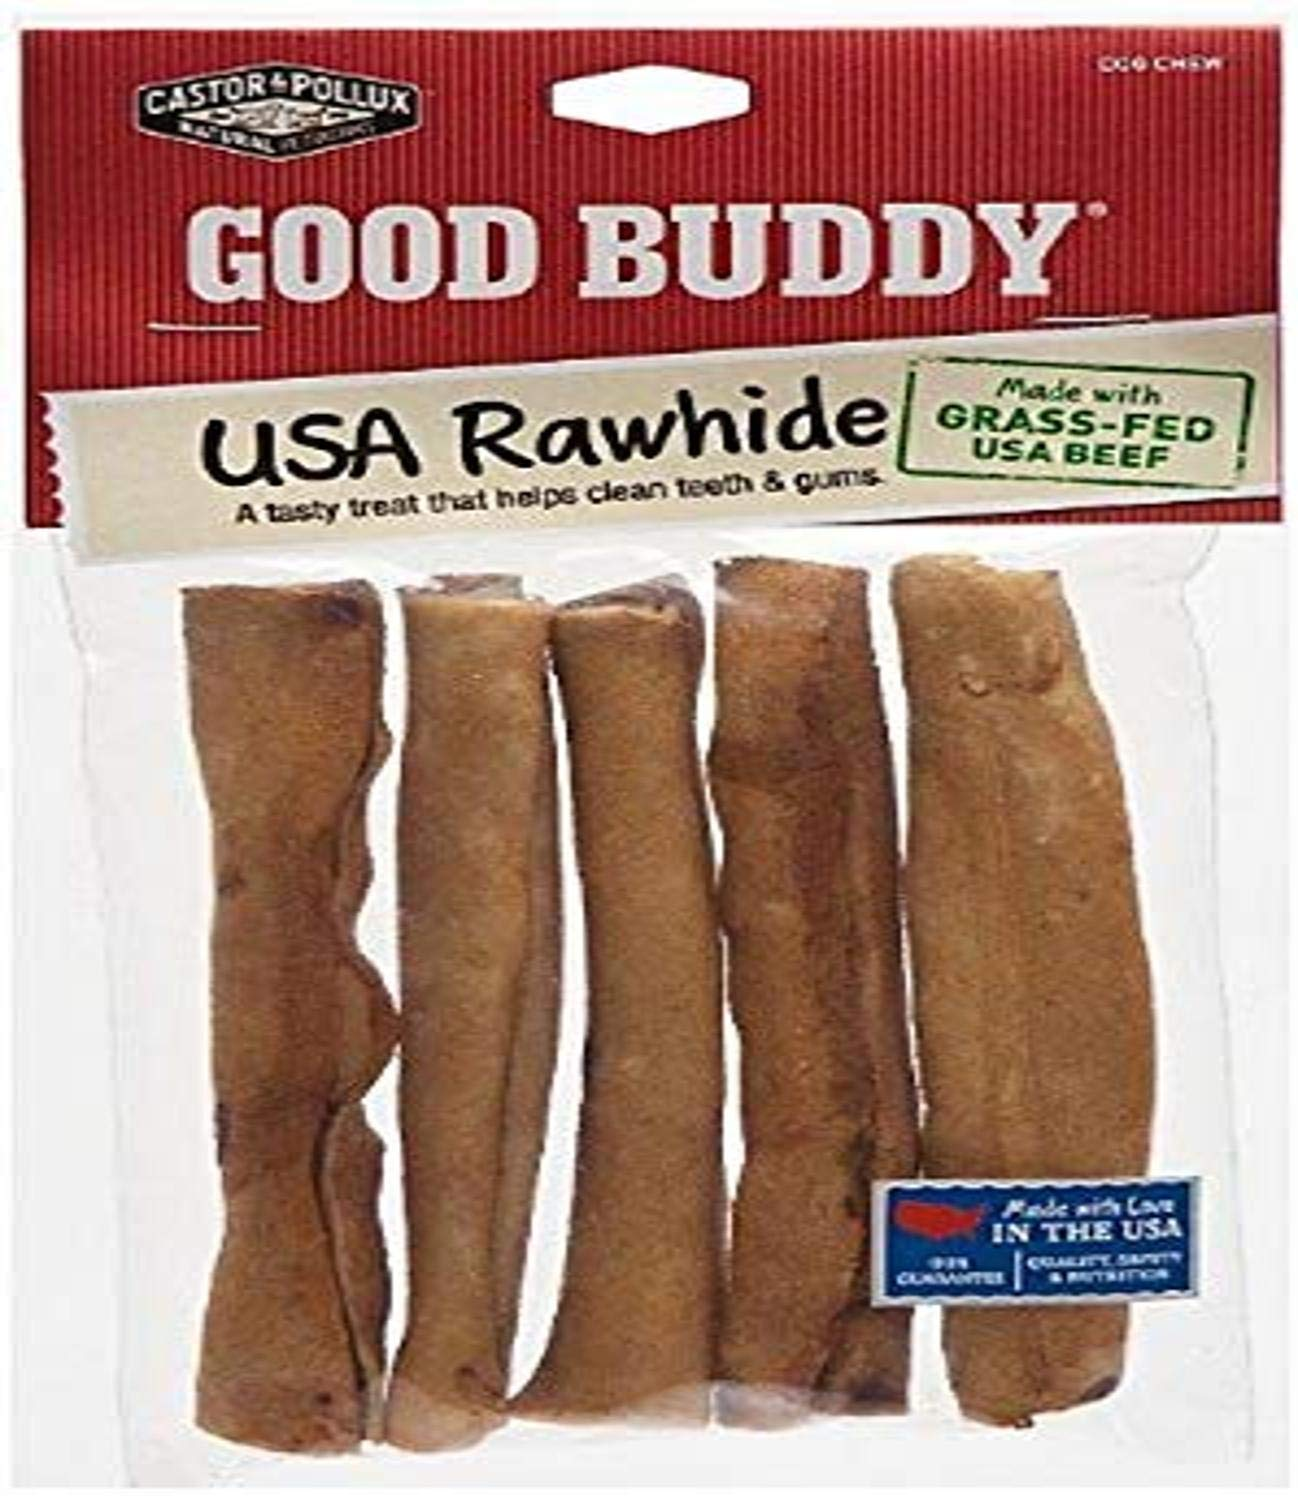 Goody Buddy 5